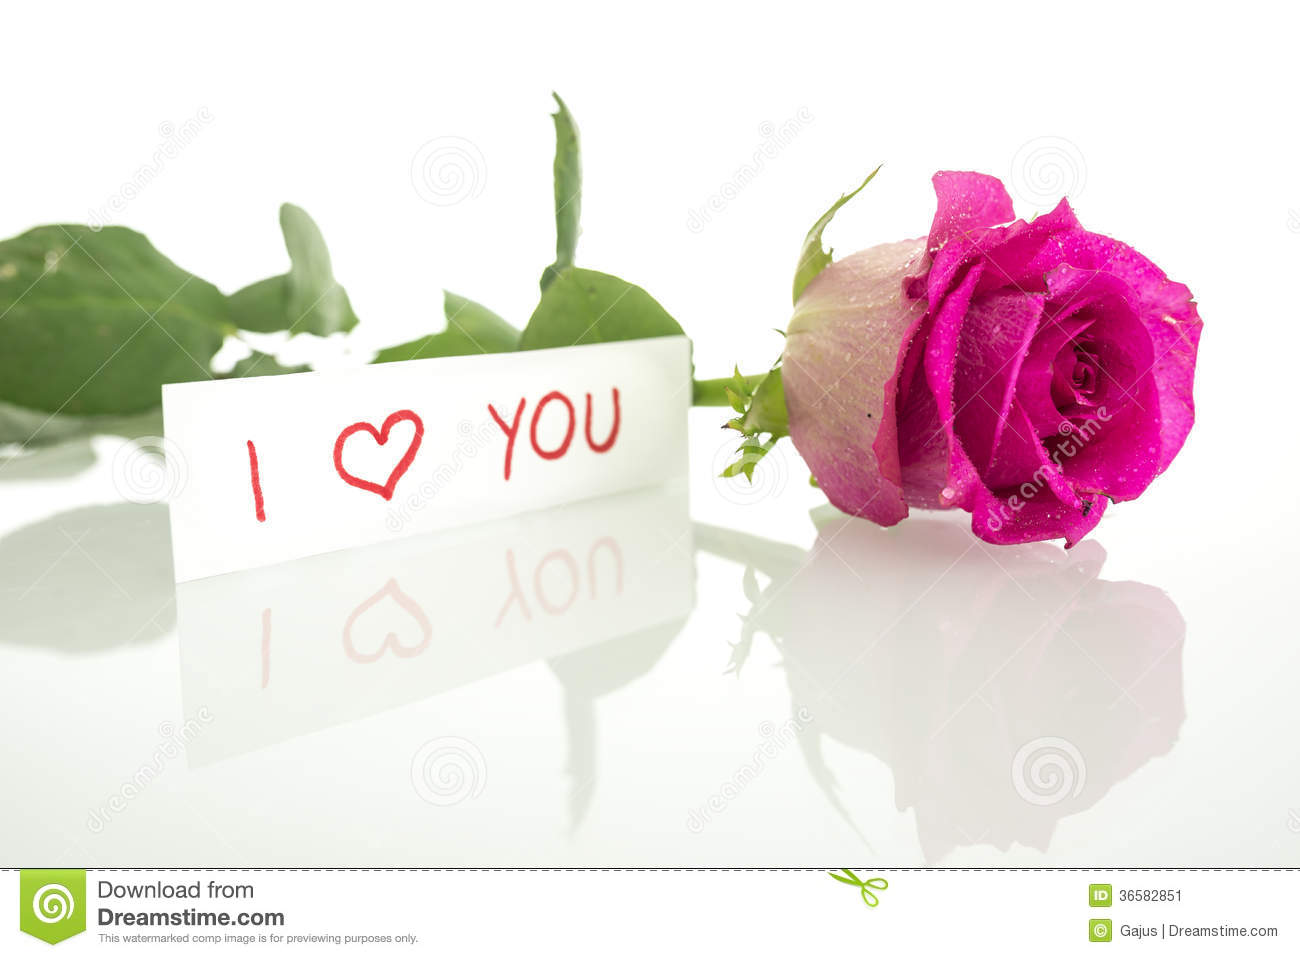 I Love You Rose Stock Images Download 5425 Royalty Free Photos